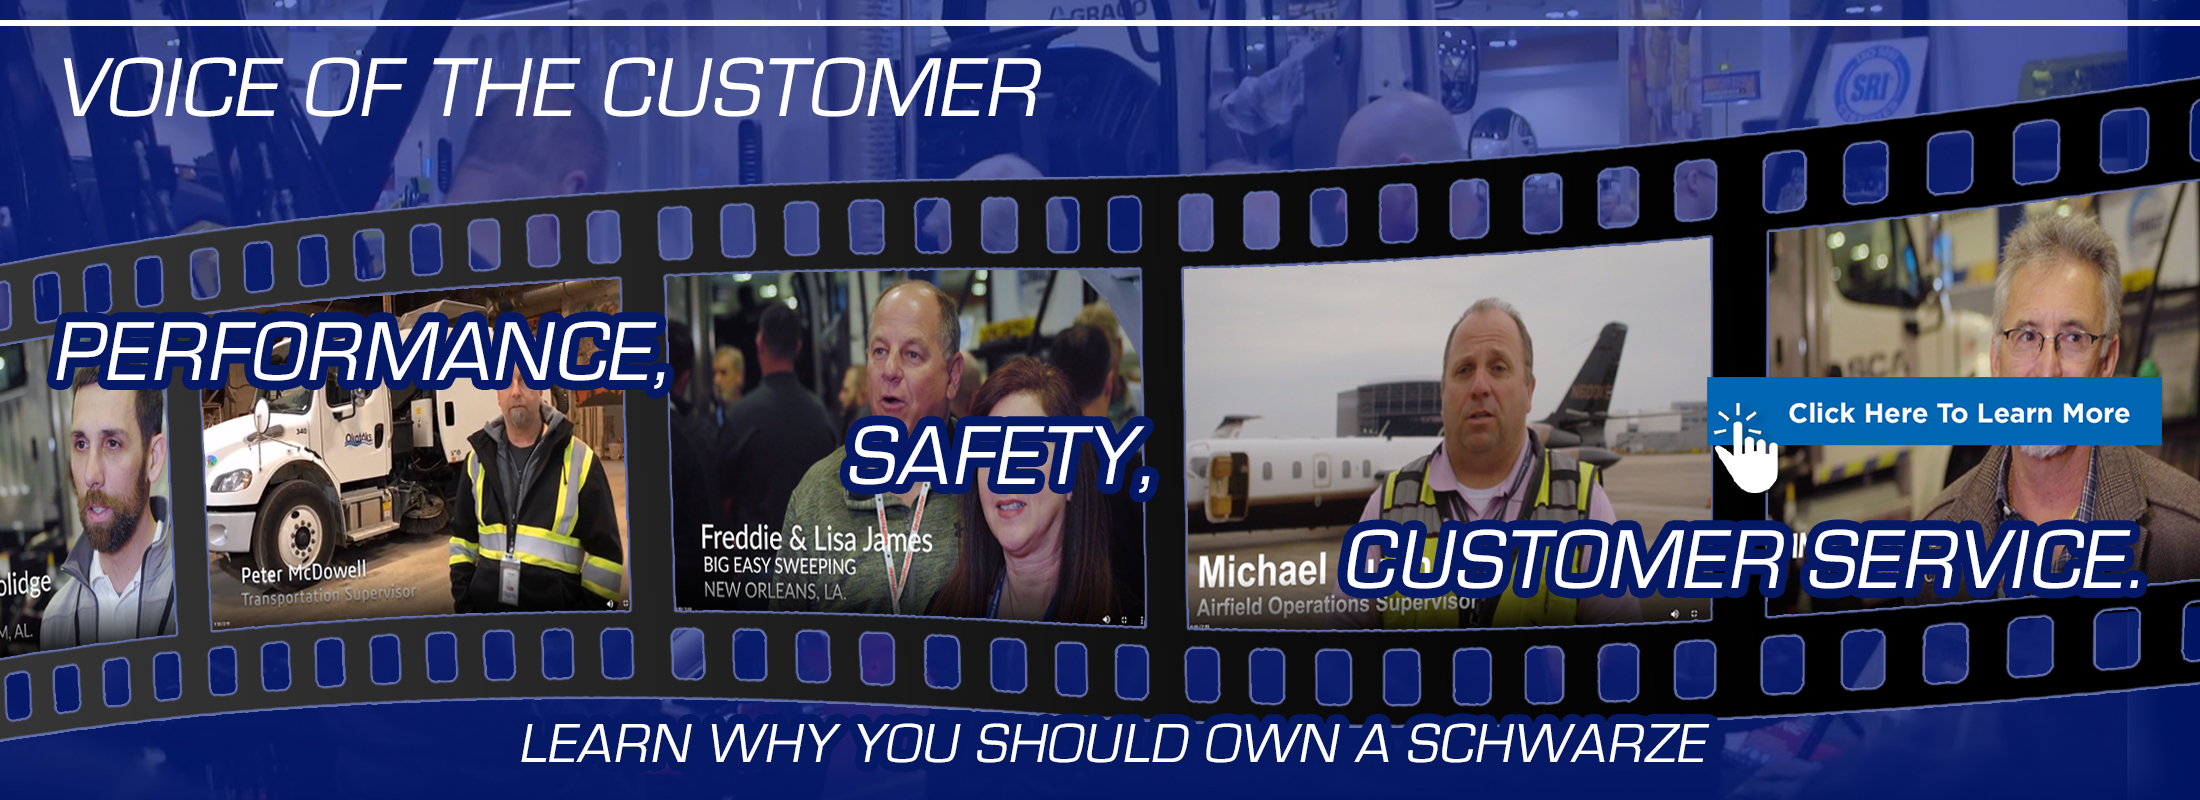 voce of the Customer Banner Graphic